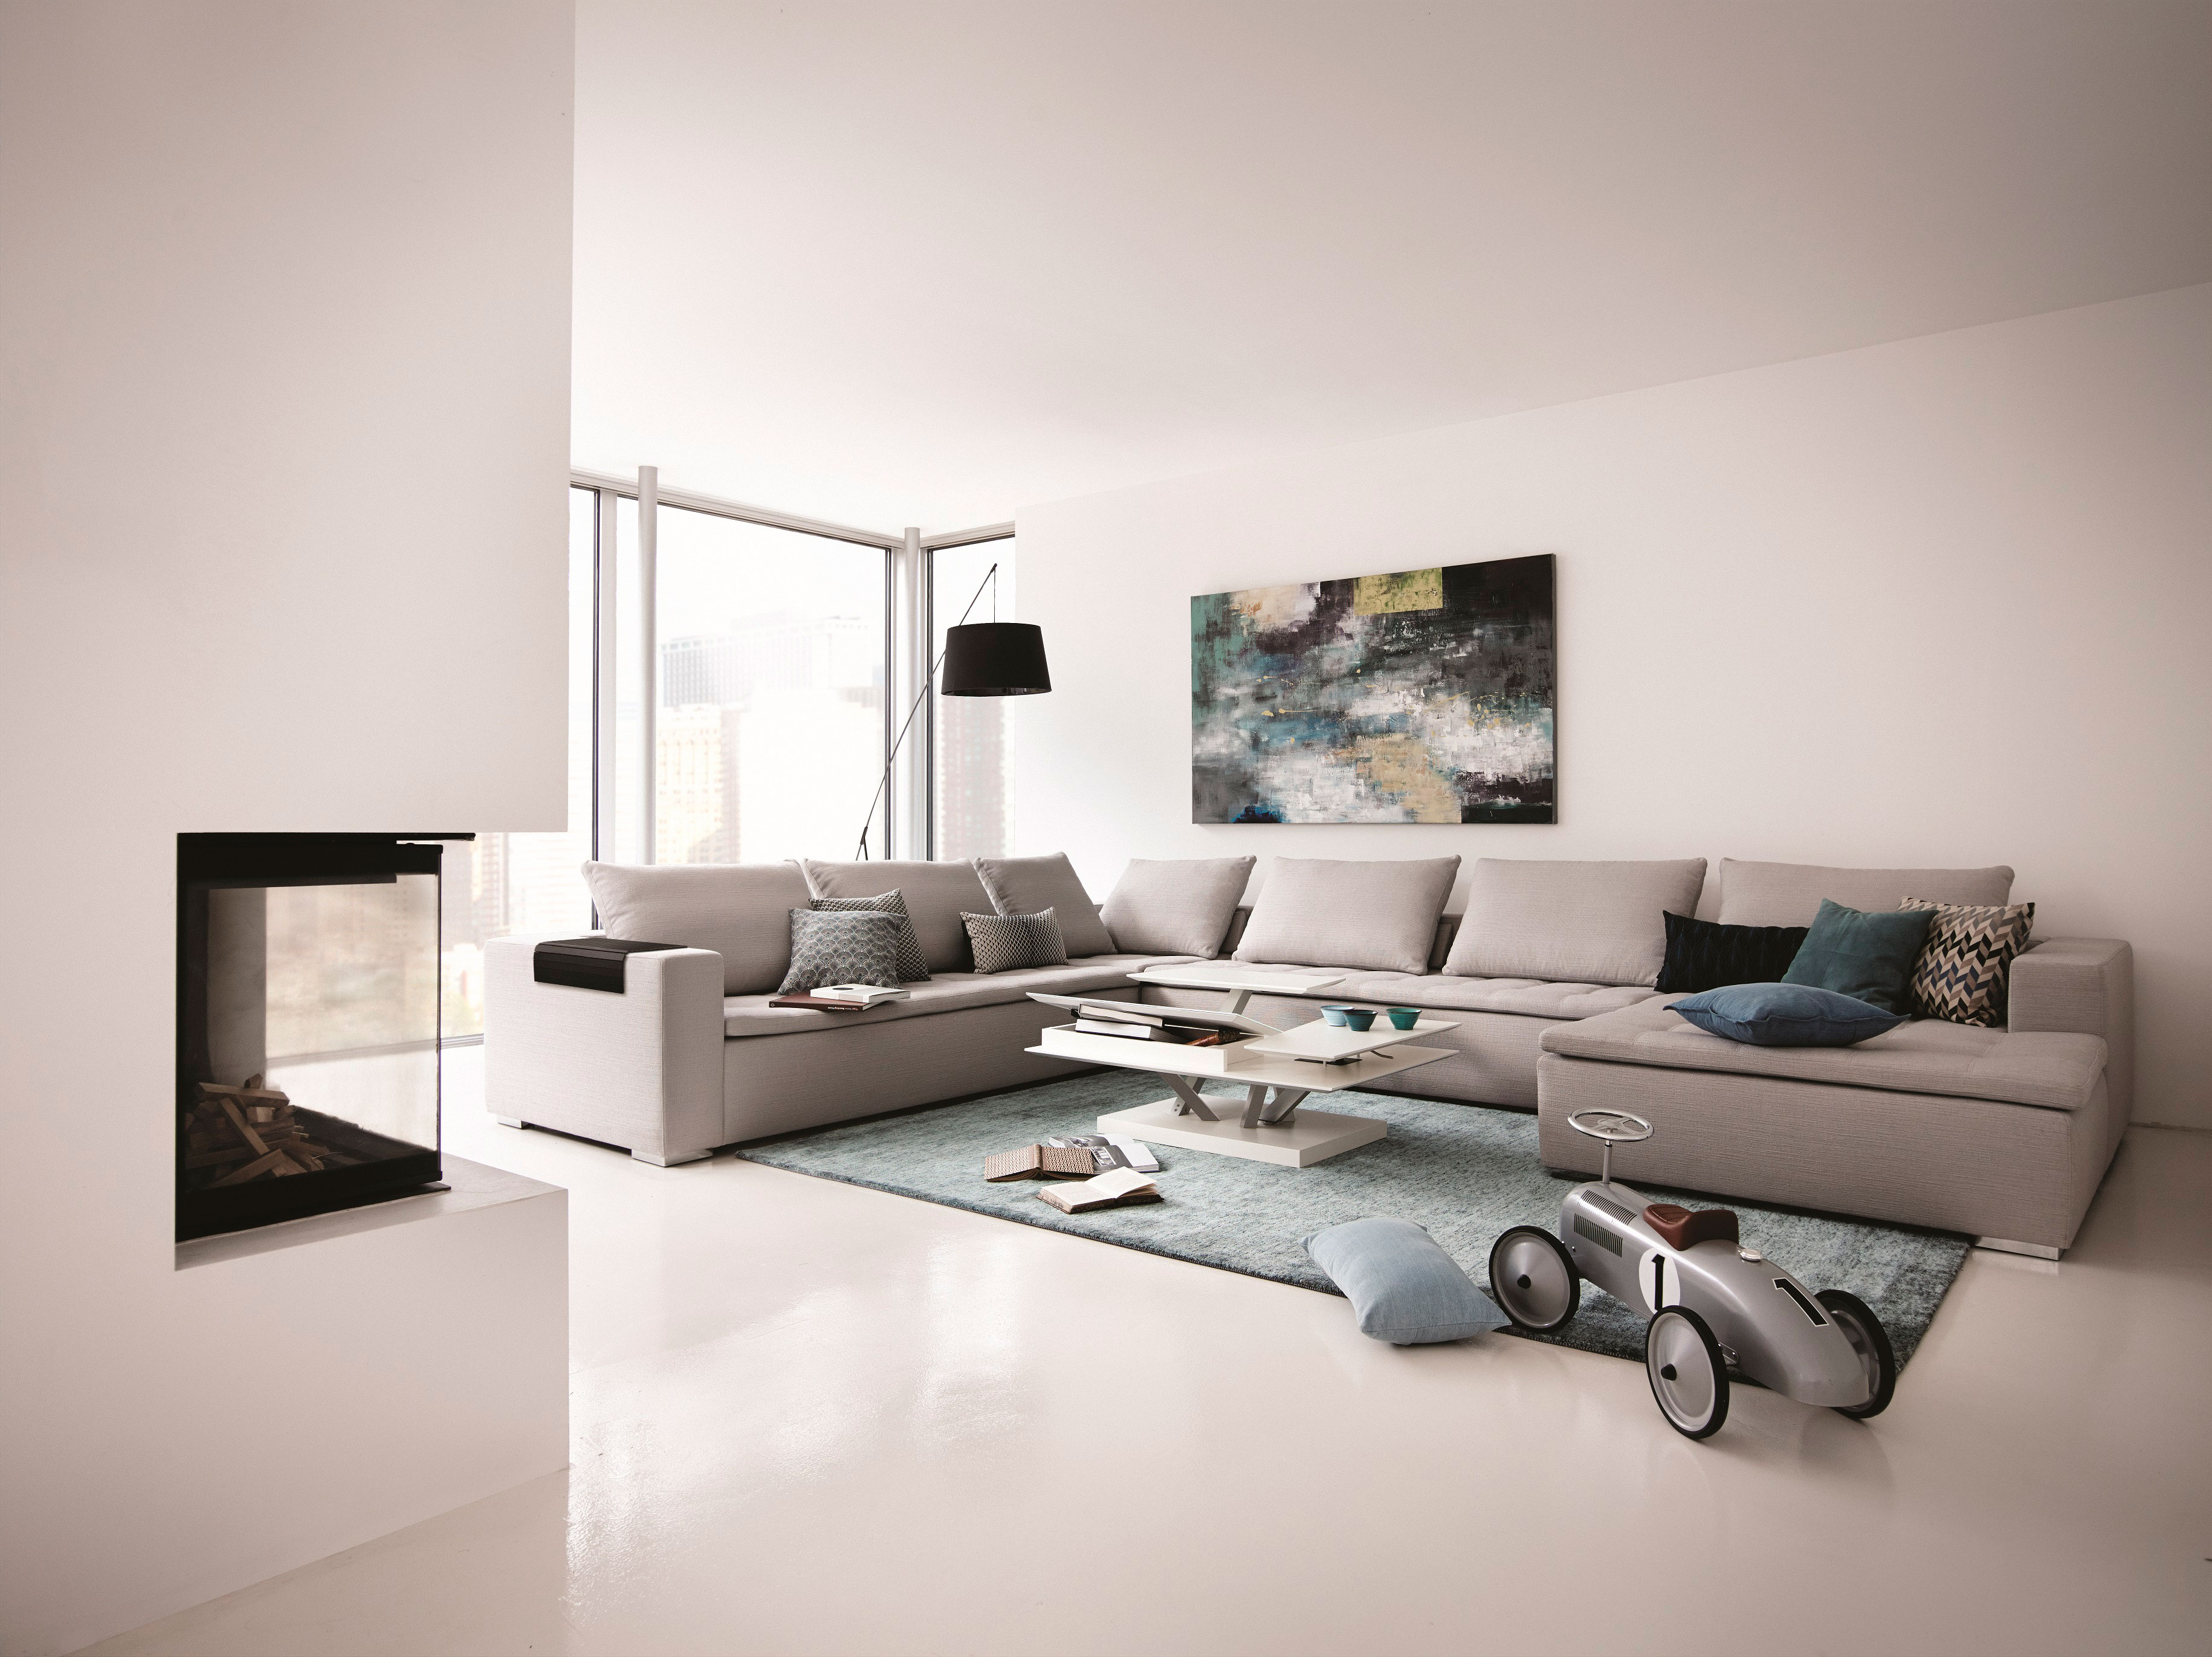 Interiors dna boconcept interiors decorating ideas for Buro concept